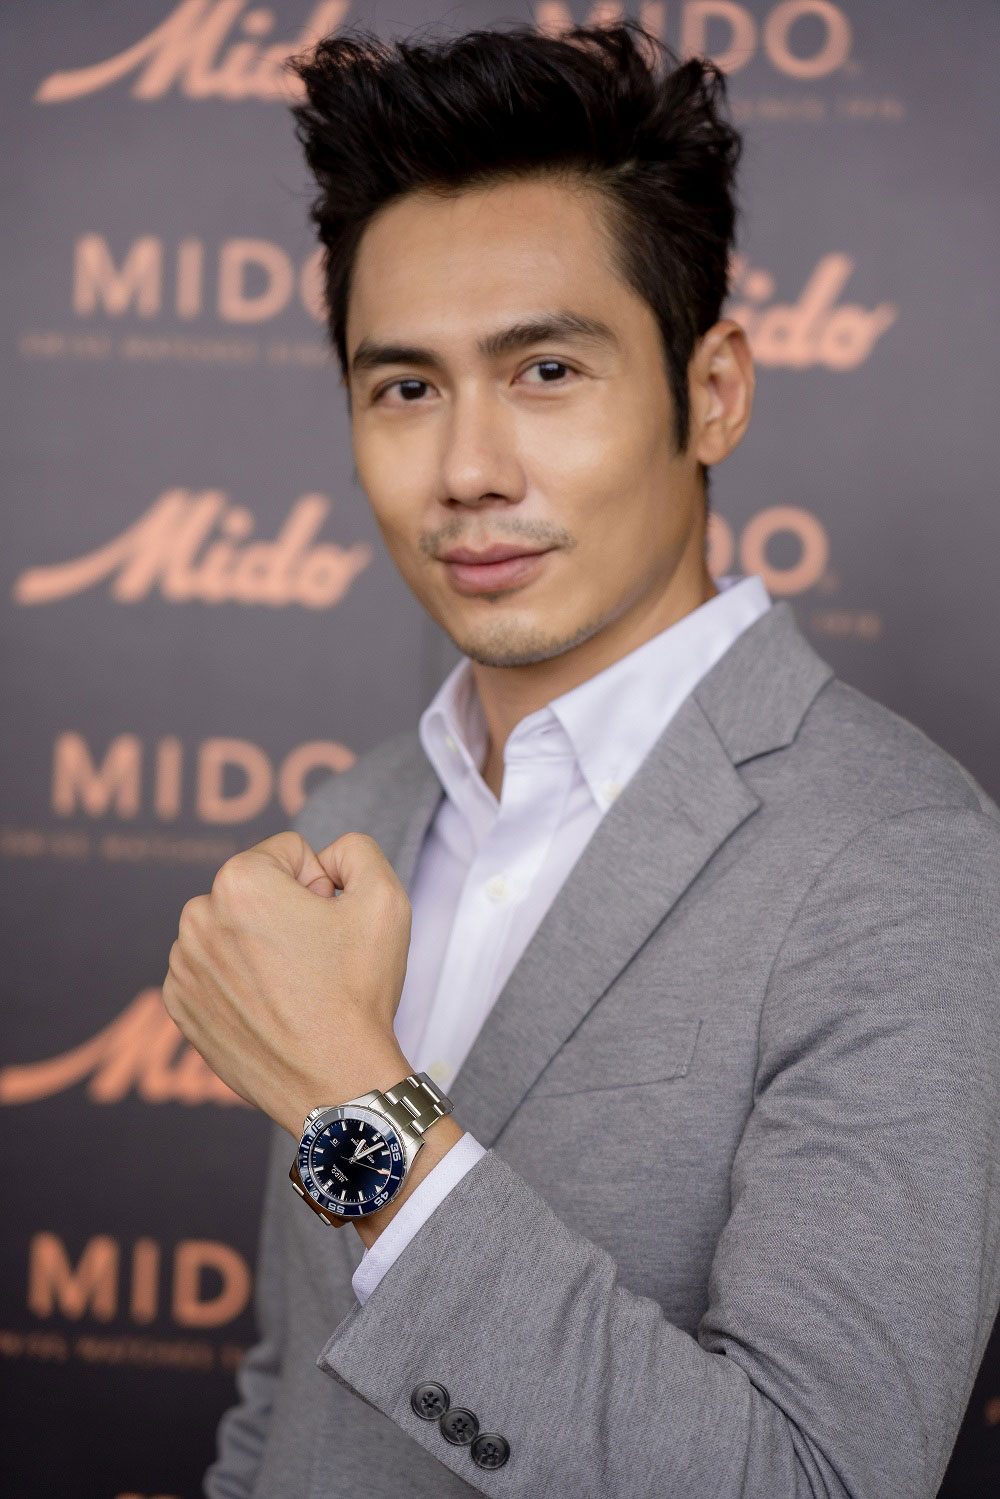 A First Look At Mido's Ocean Star Diver 600 5